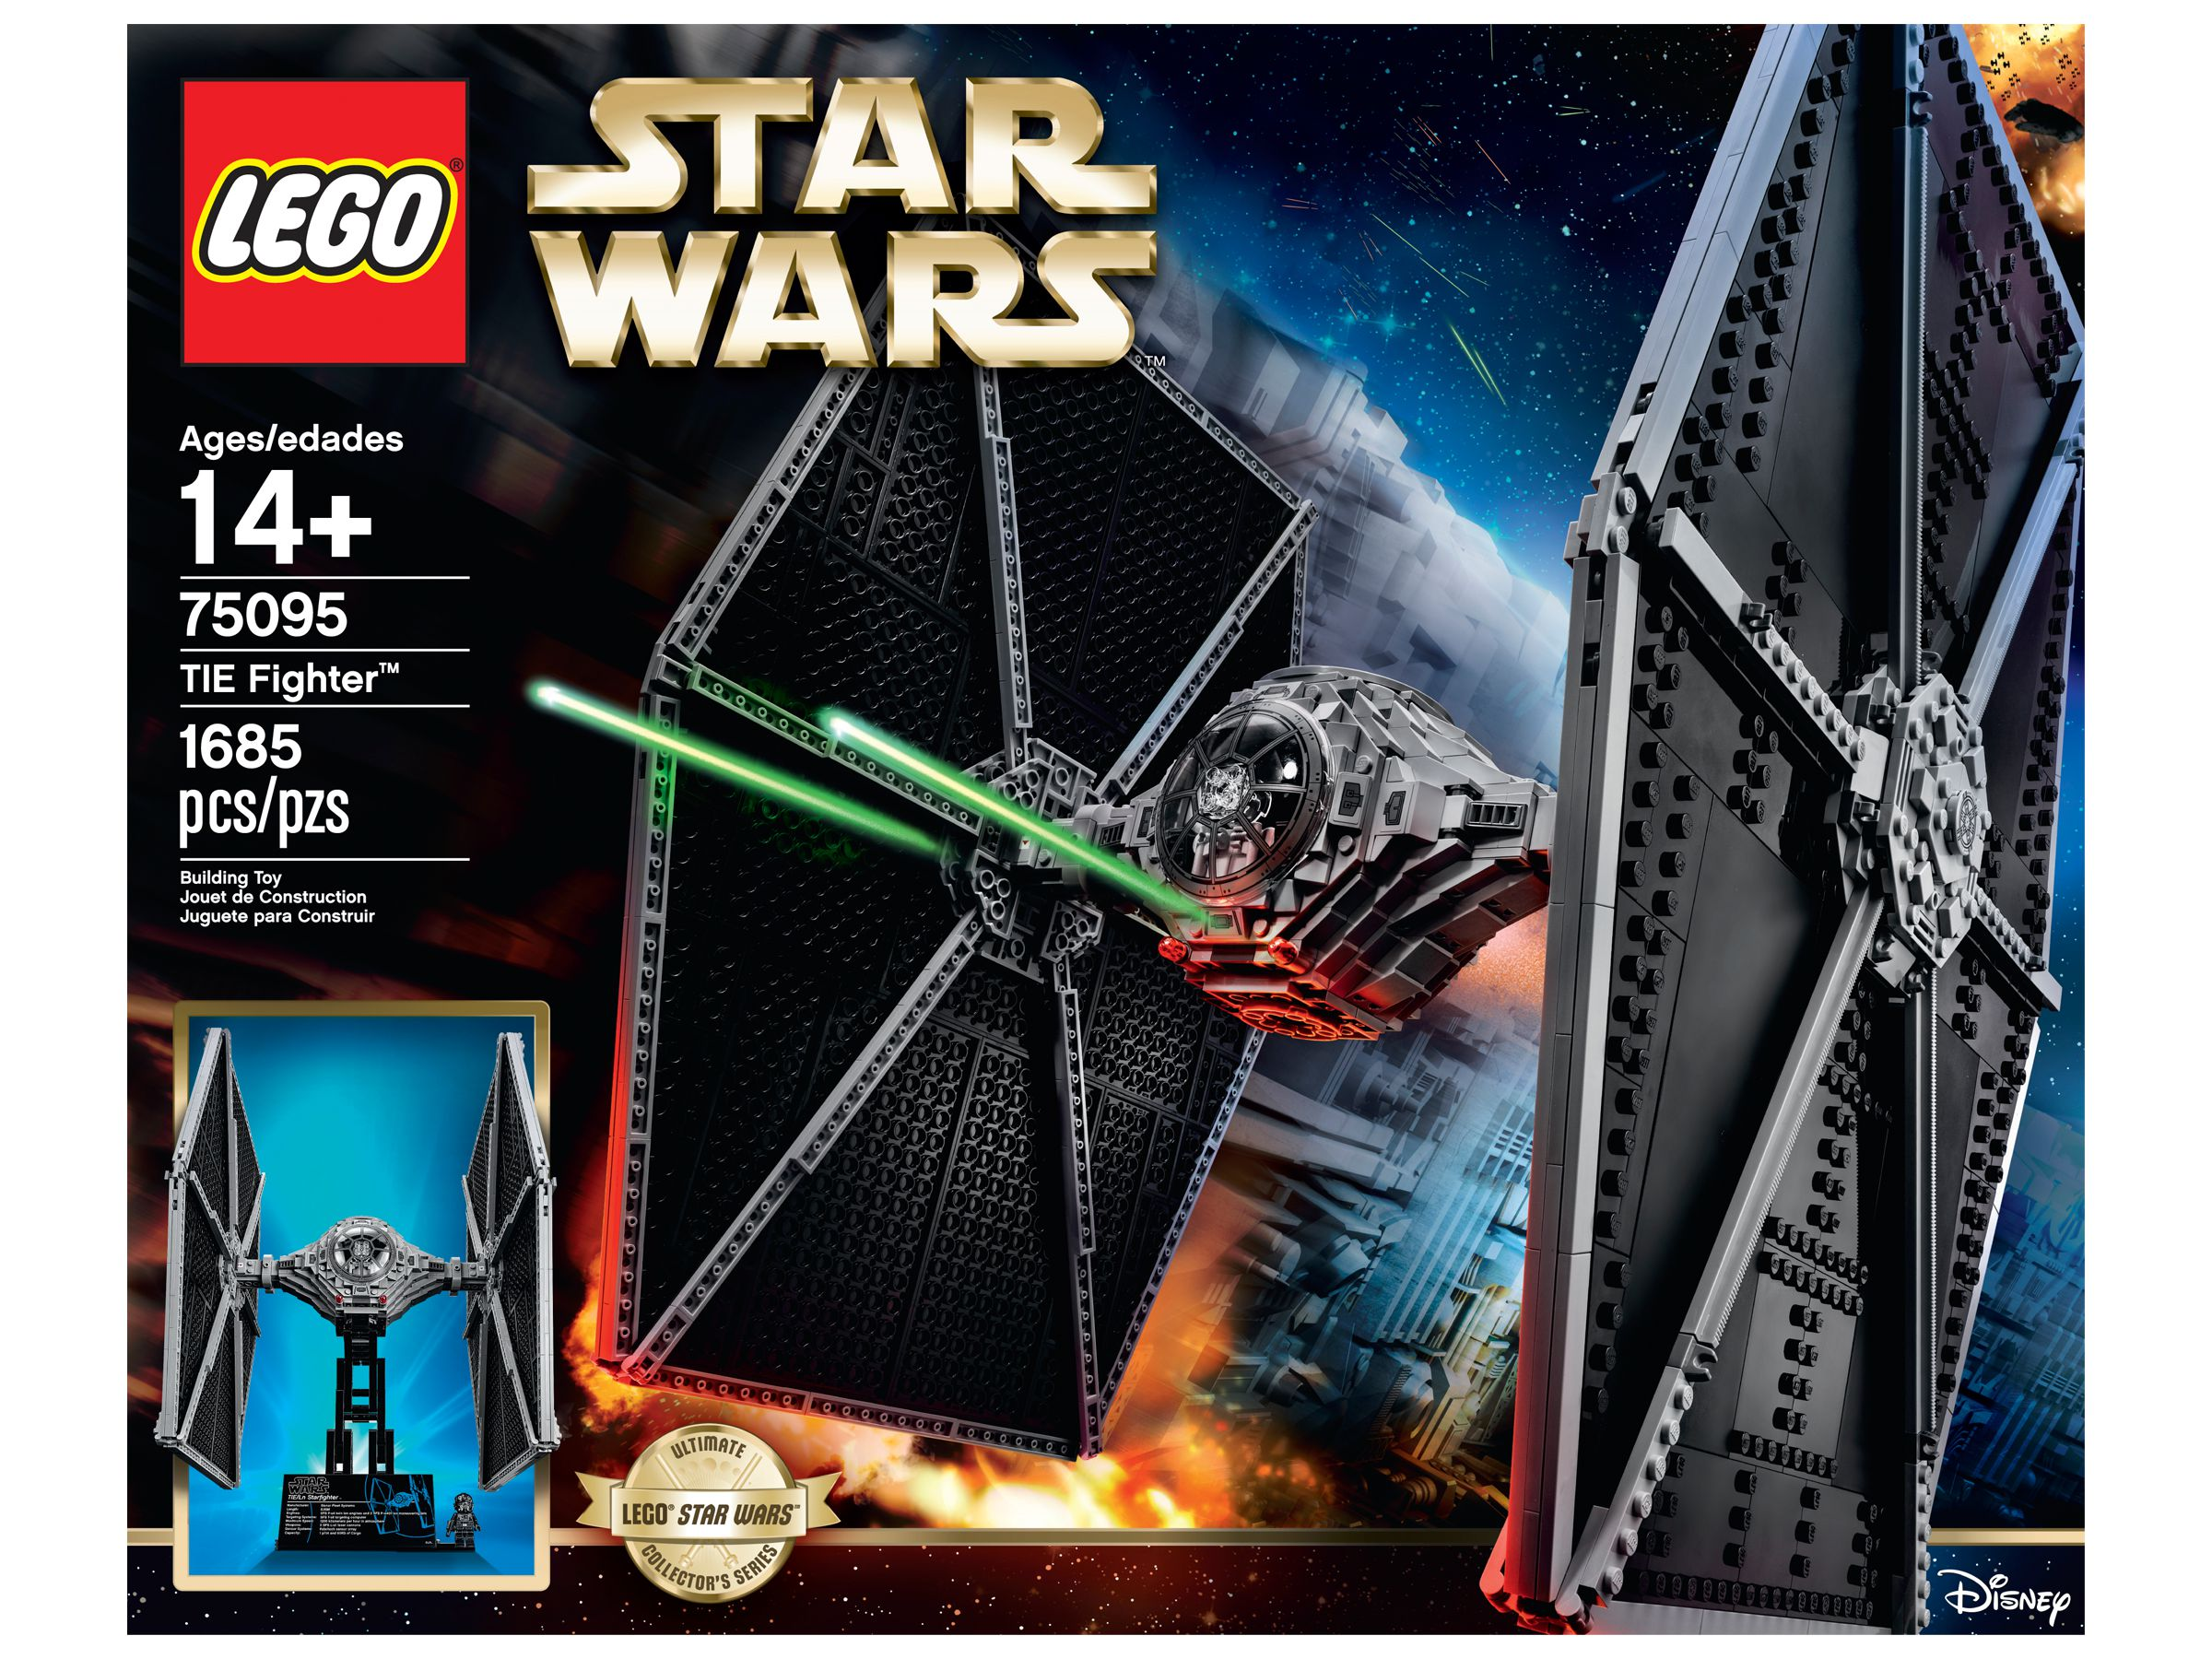 LEGO Star Wars 75095 UCS TIE Fighter™ LEGO_75095_alt1.jpg